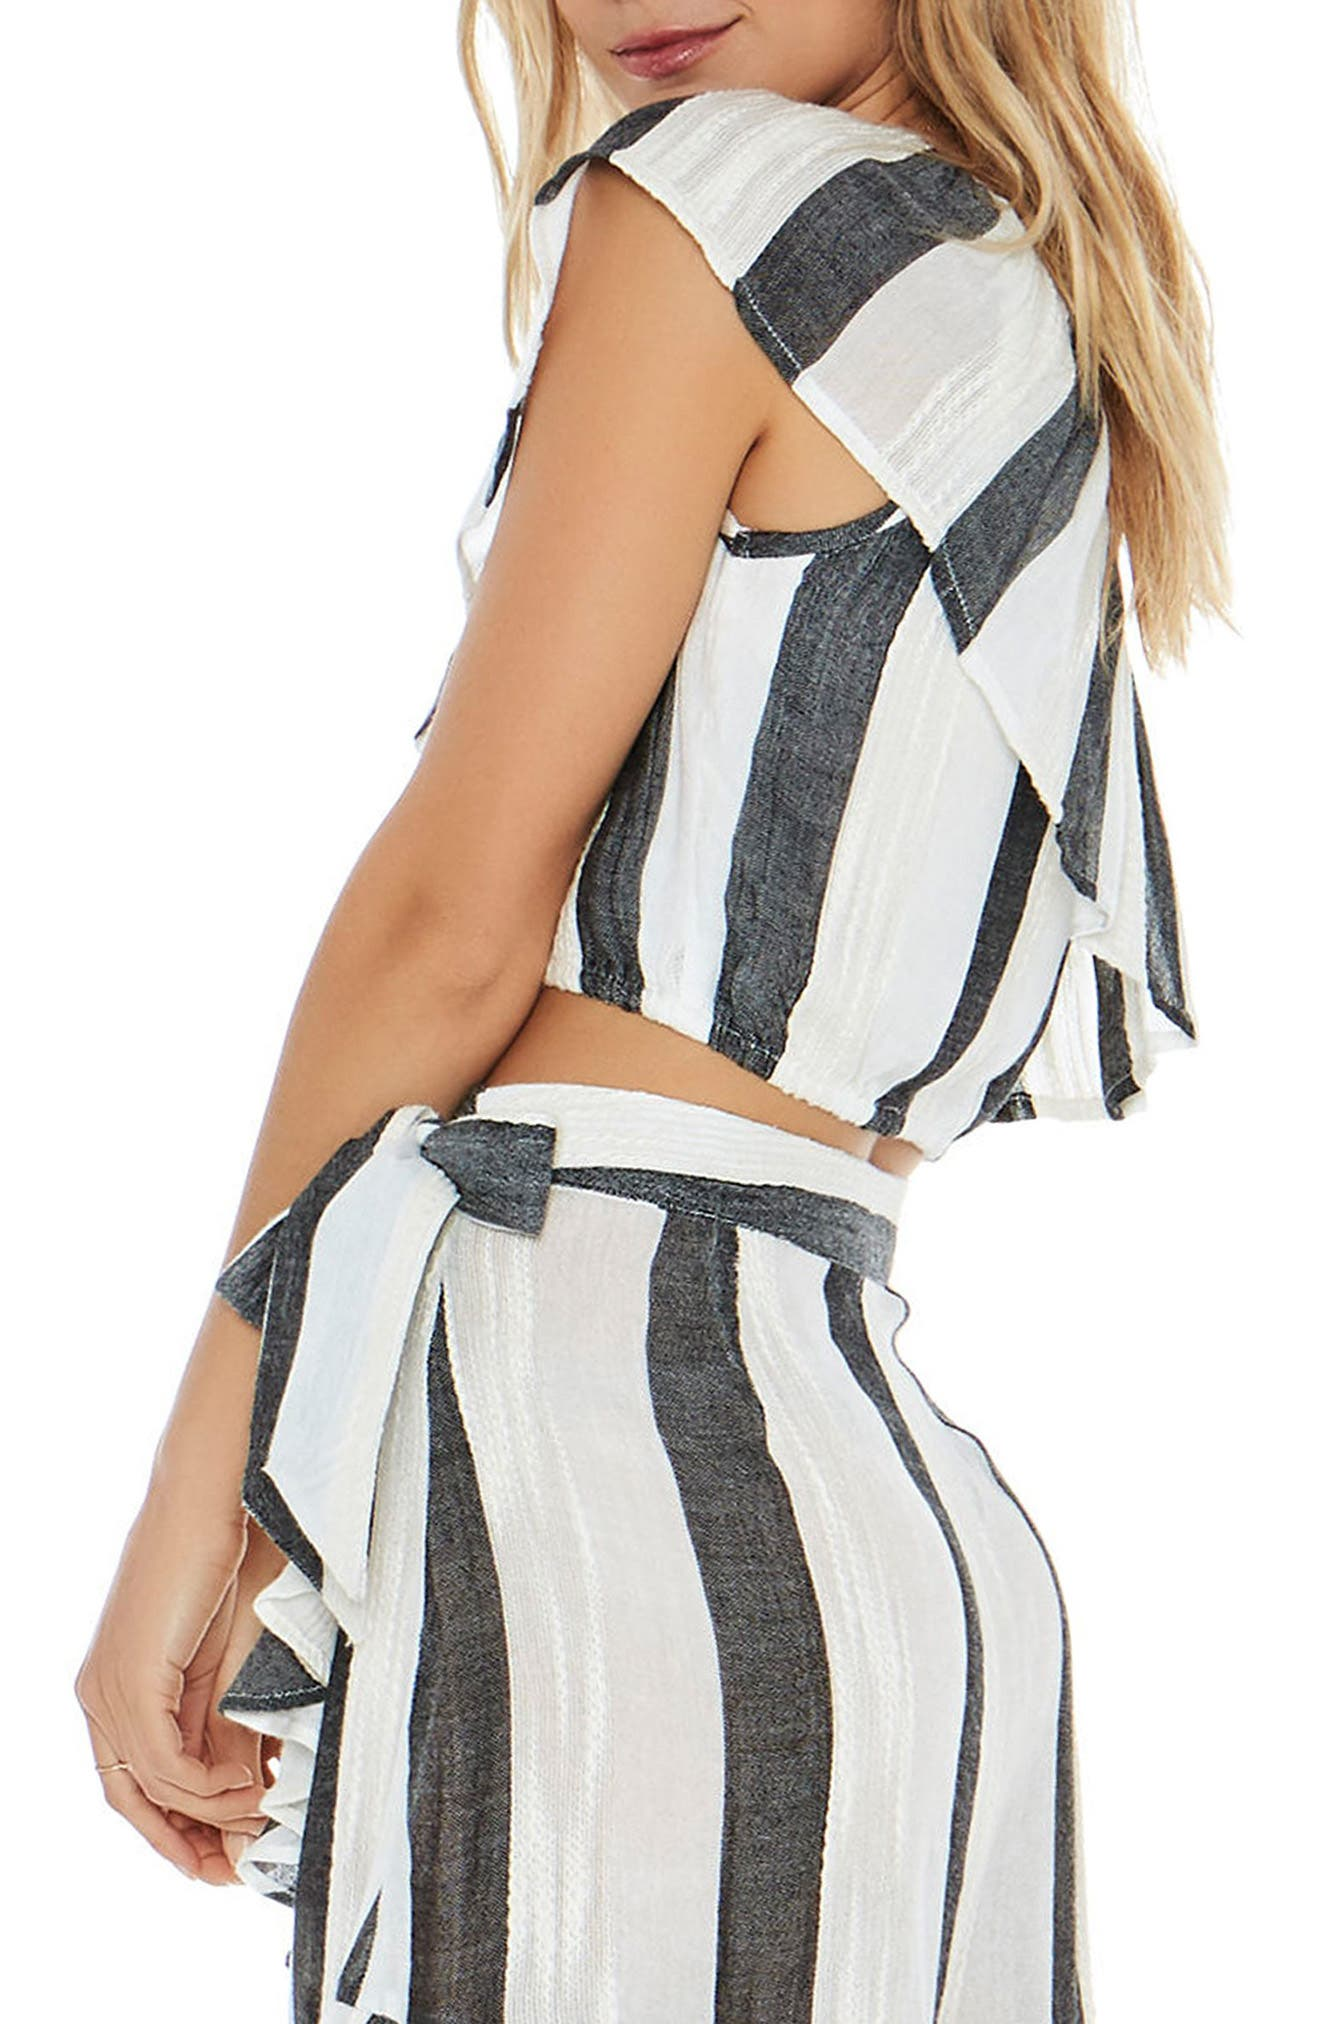 Alicia One-Shoulder Cover-Up Top,                             Alternate thumbnail 3, color,                             Beach Bum Stripe